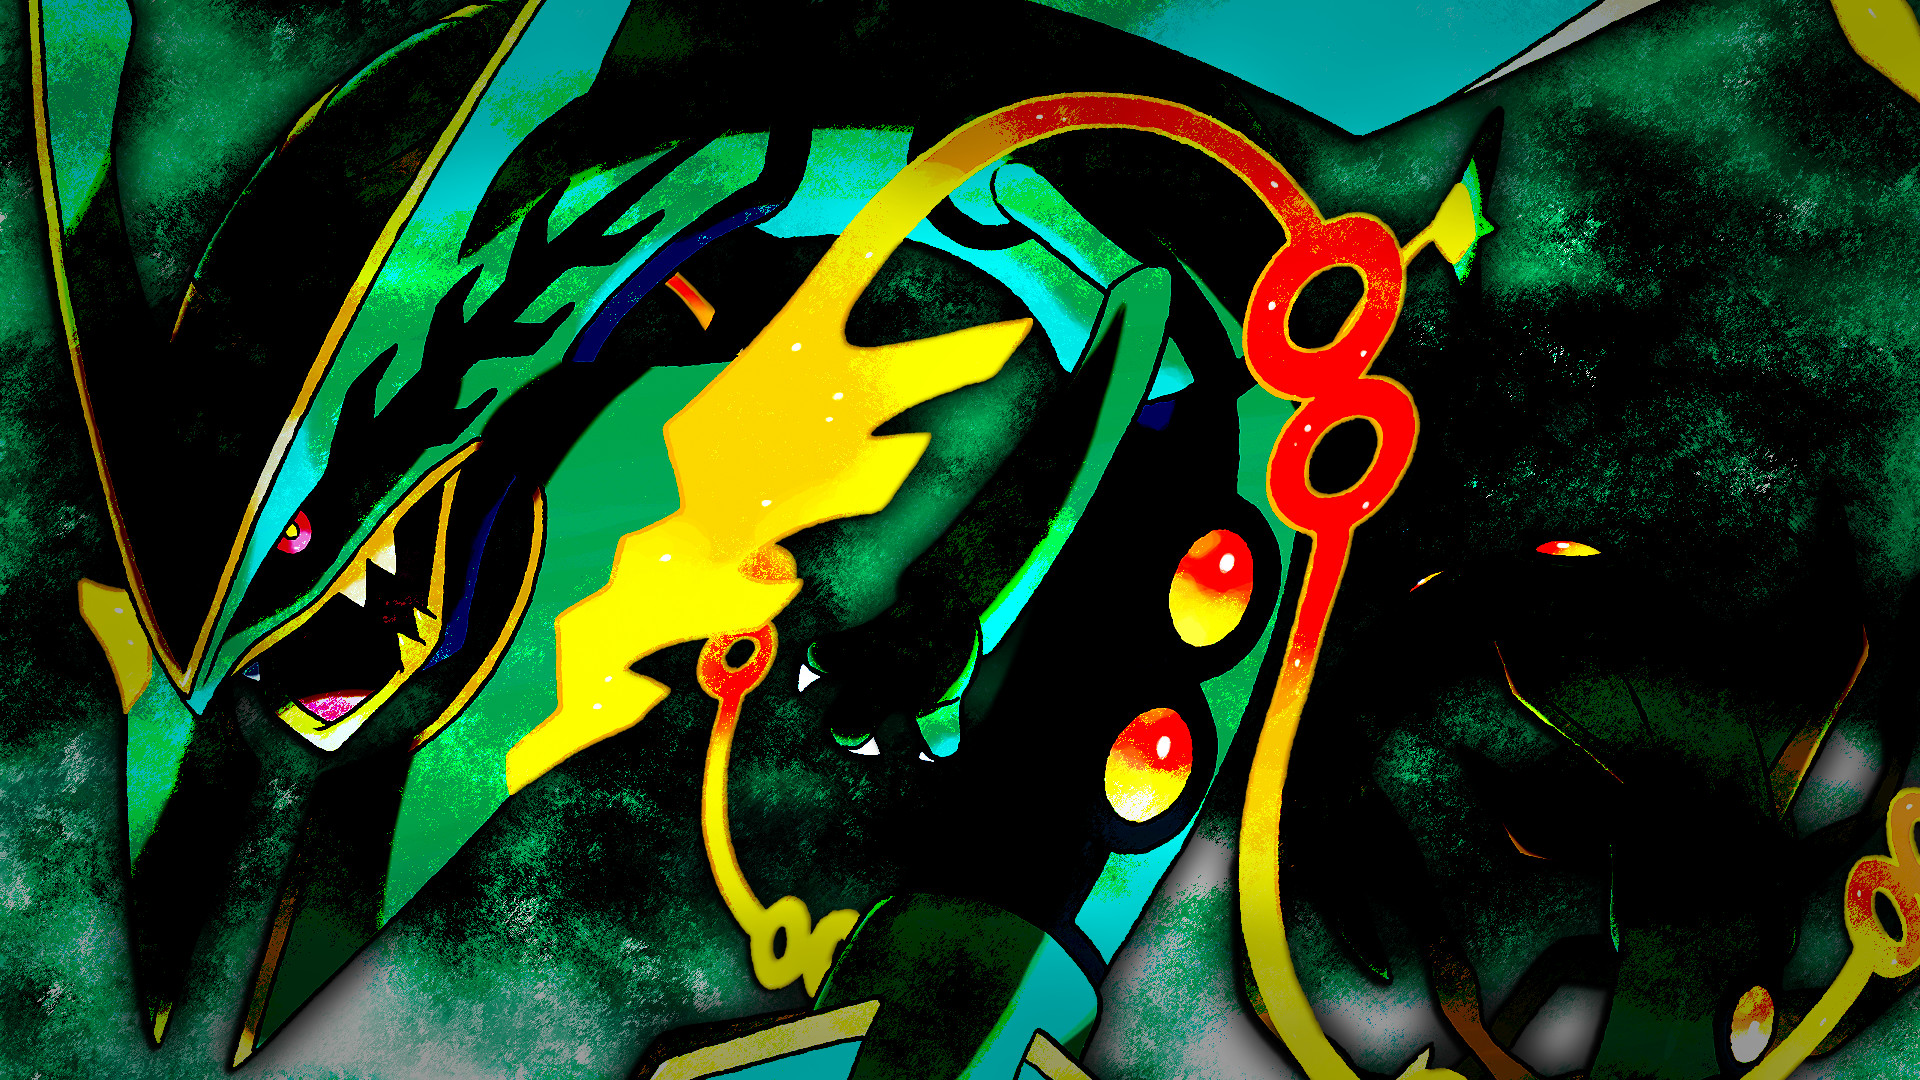 1920x1080 Shiny Mega Rayquaza Wallpaper - WallpaperSafari